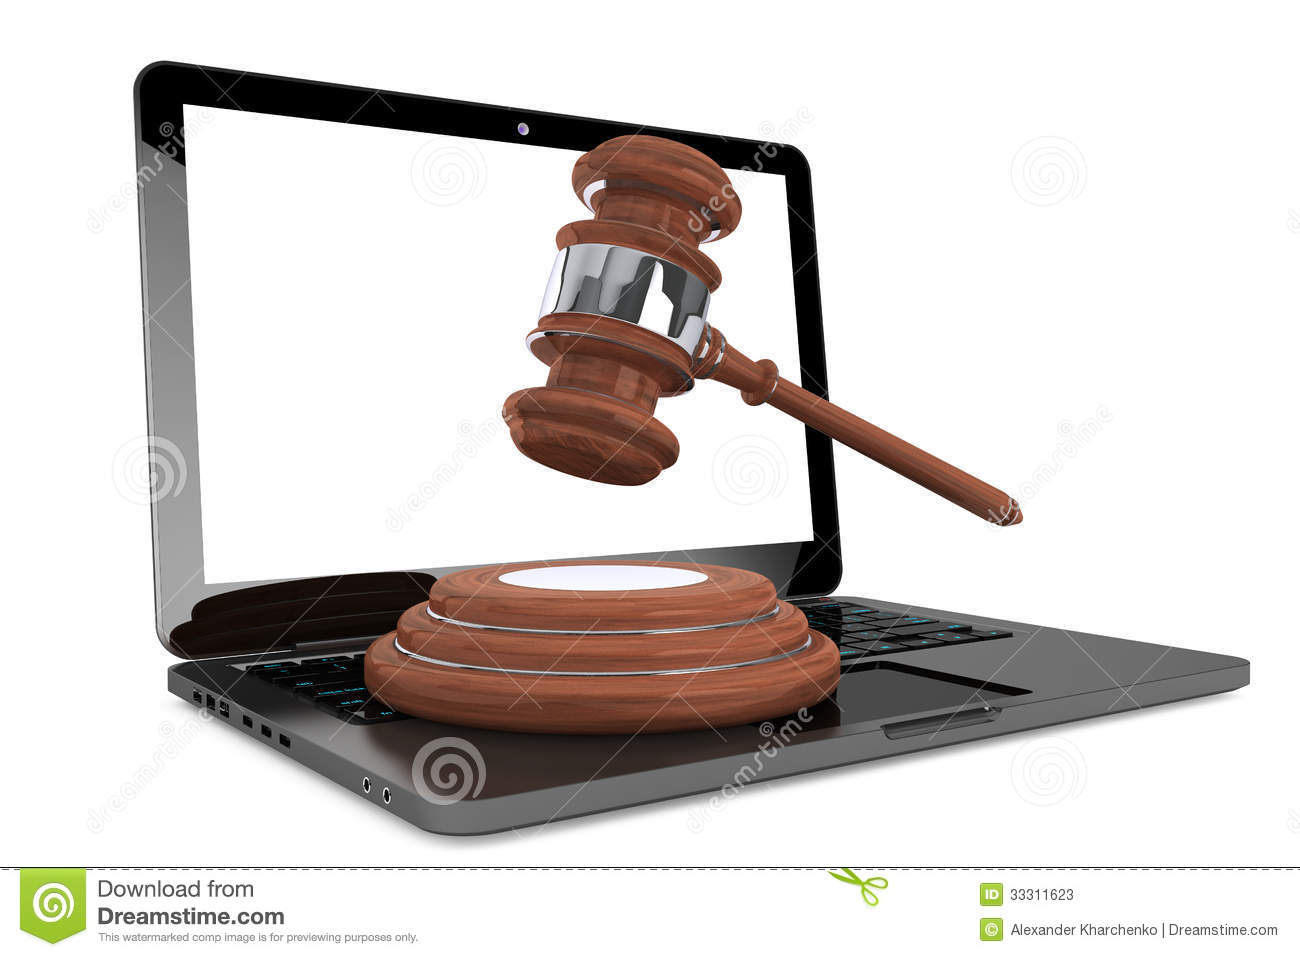 Free Online Legal Tools - Are They Really Helpful